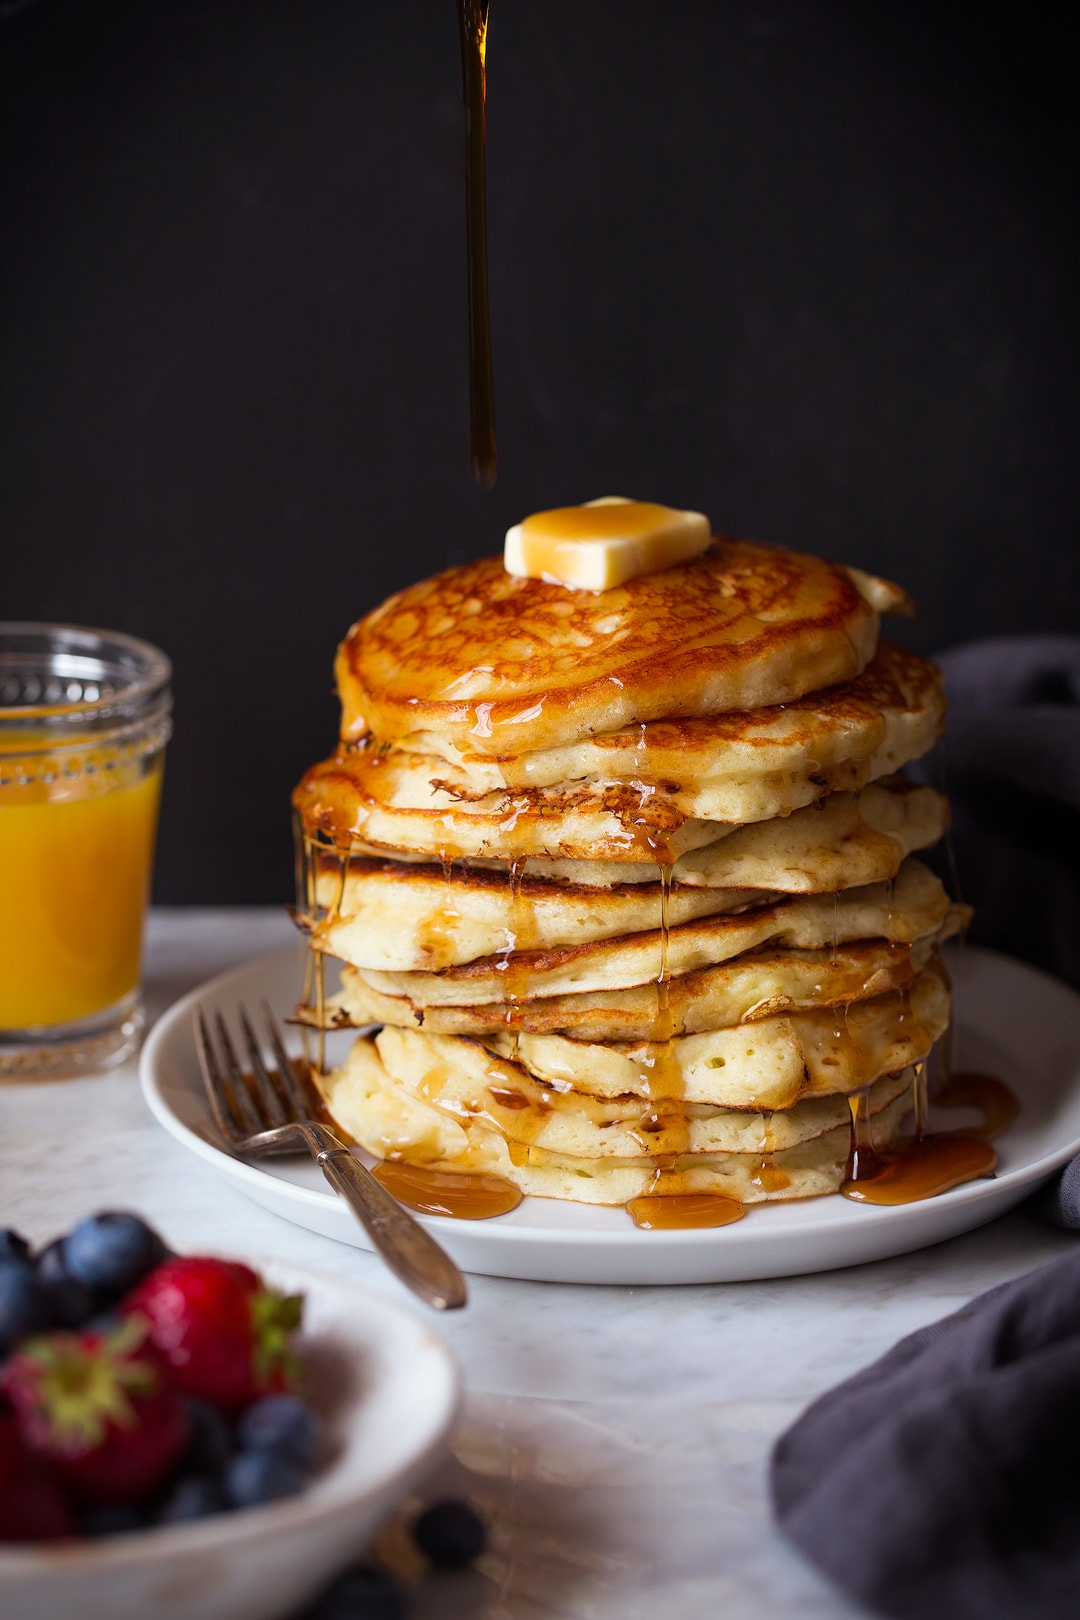 Stack of pancakes on a plate. Syrup is being poured over the top.